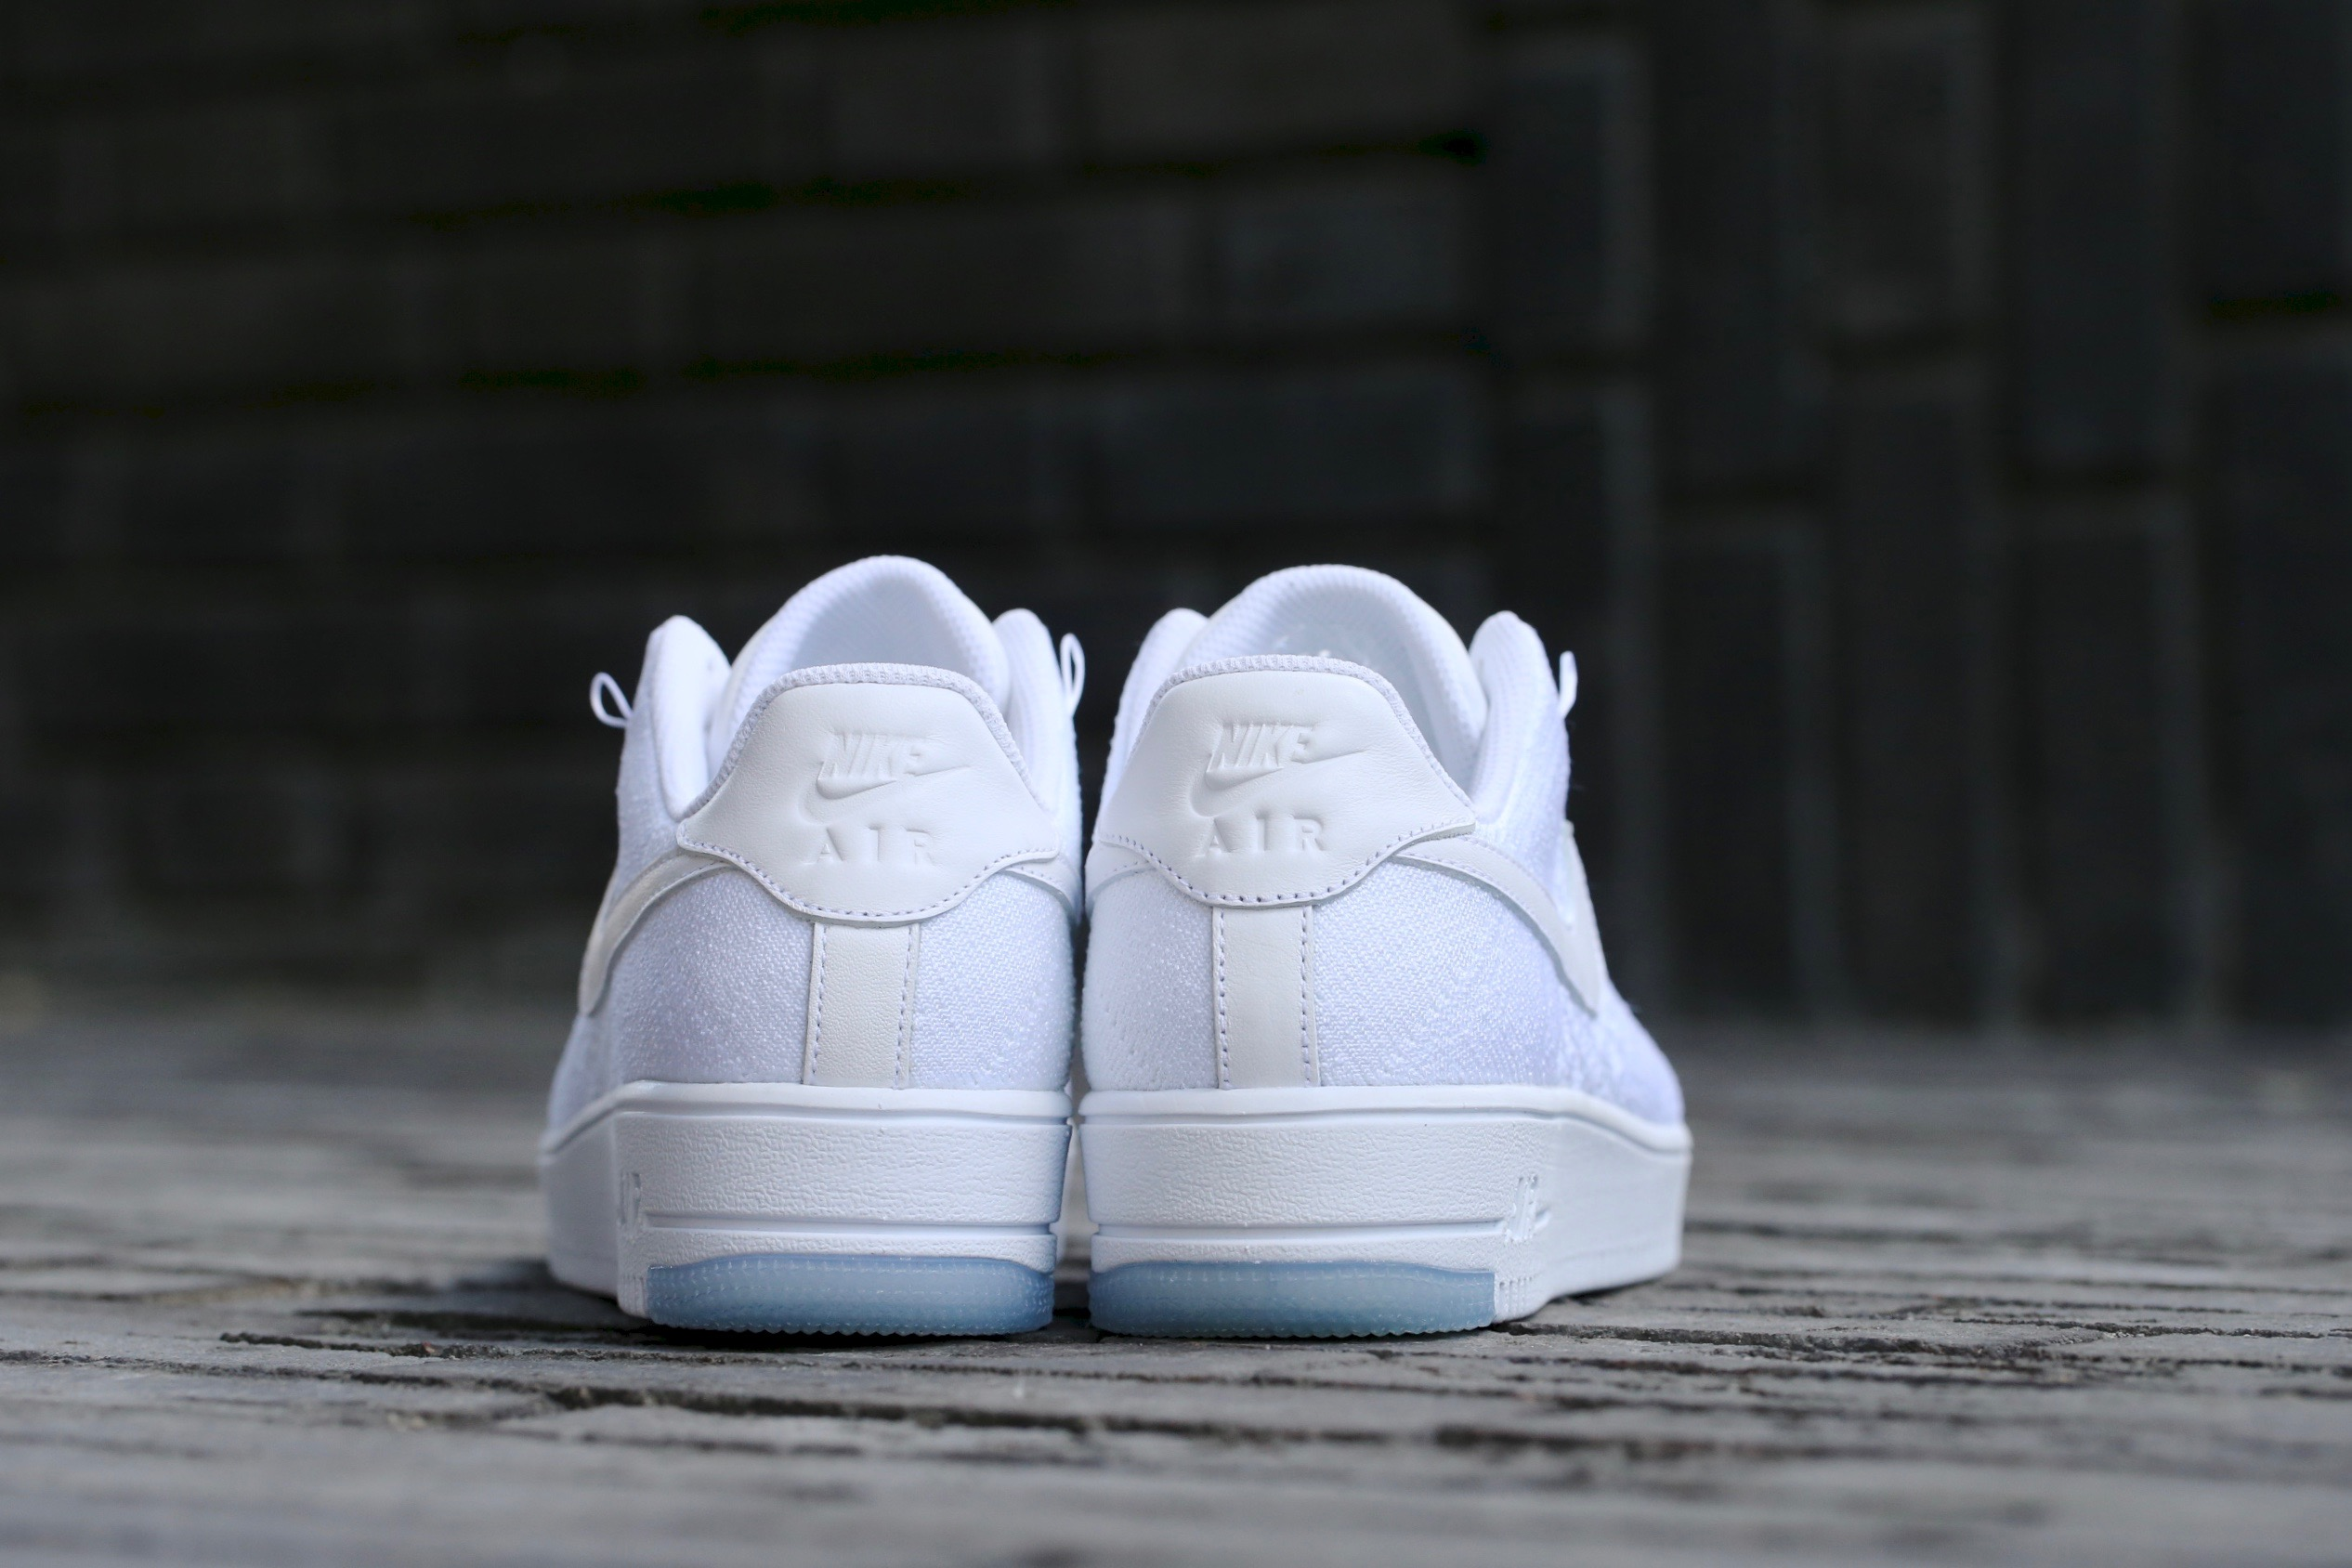 separation shoes fc30b 86135 Nike W Air Force 1 Flyknit Low - White / White